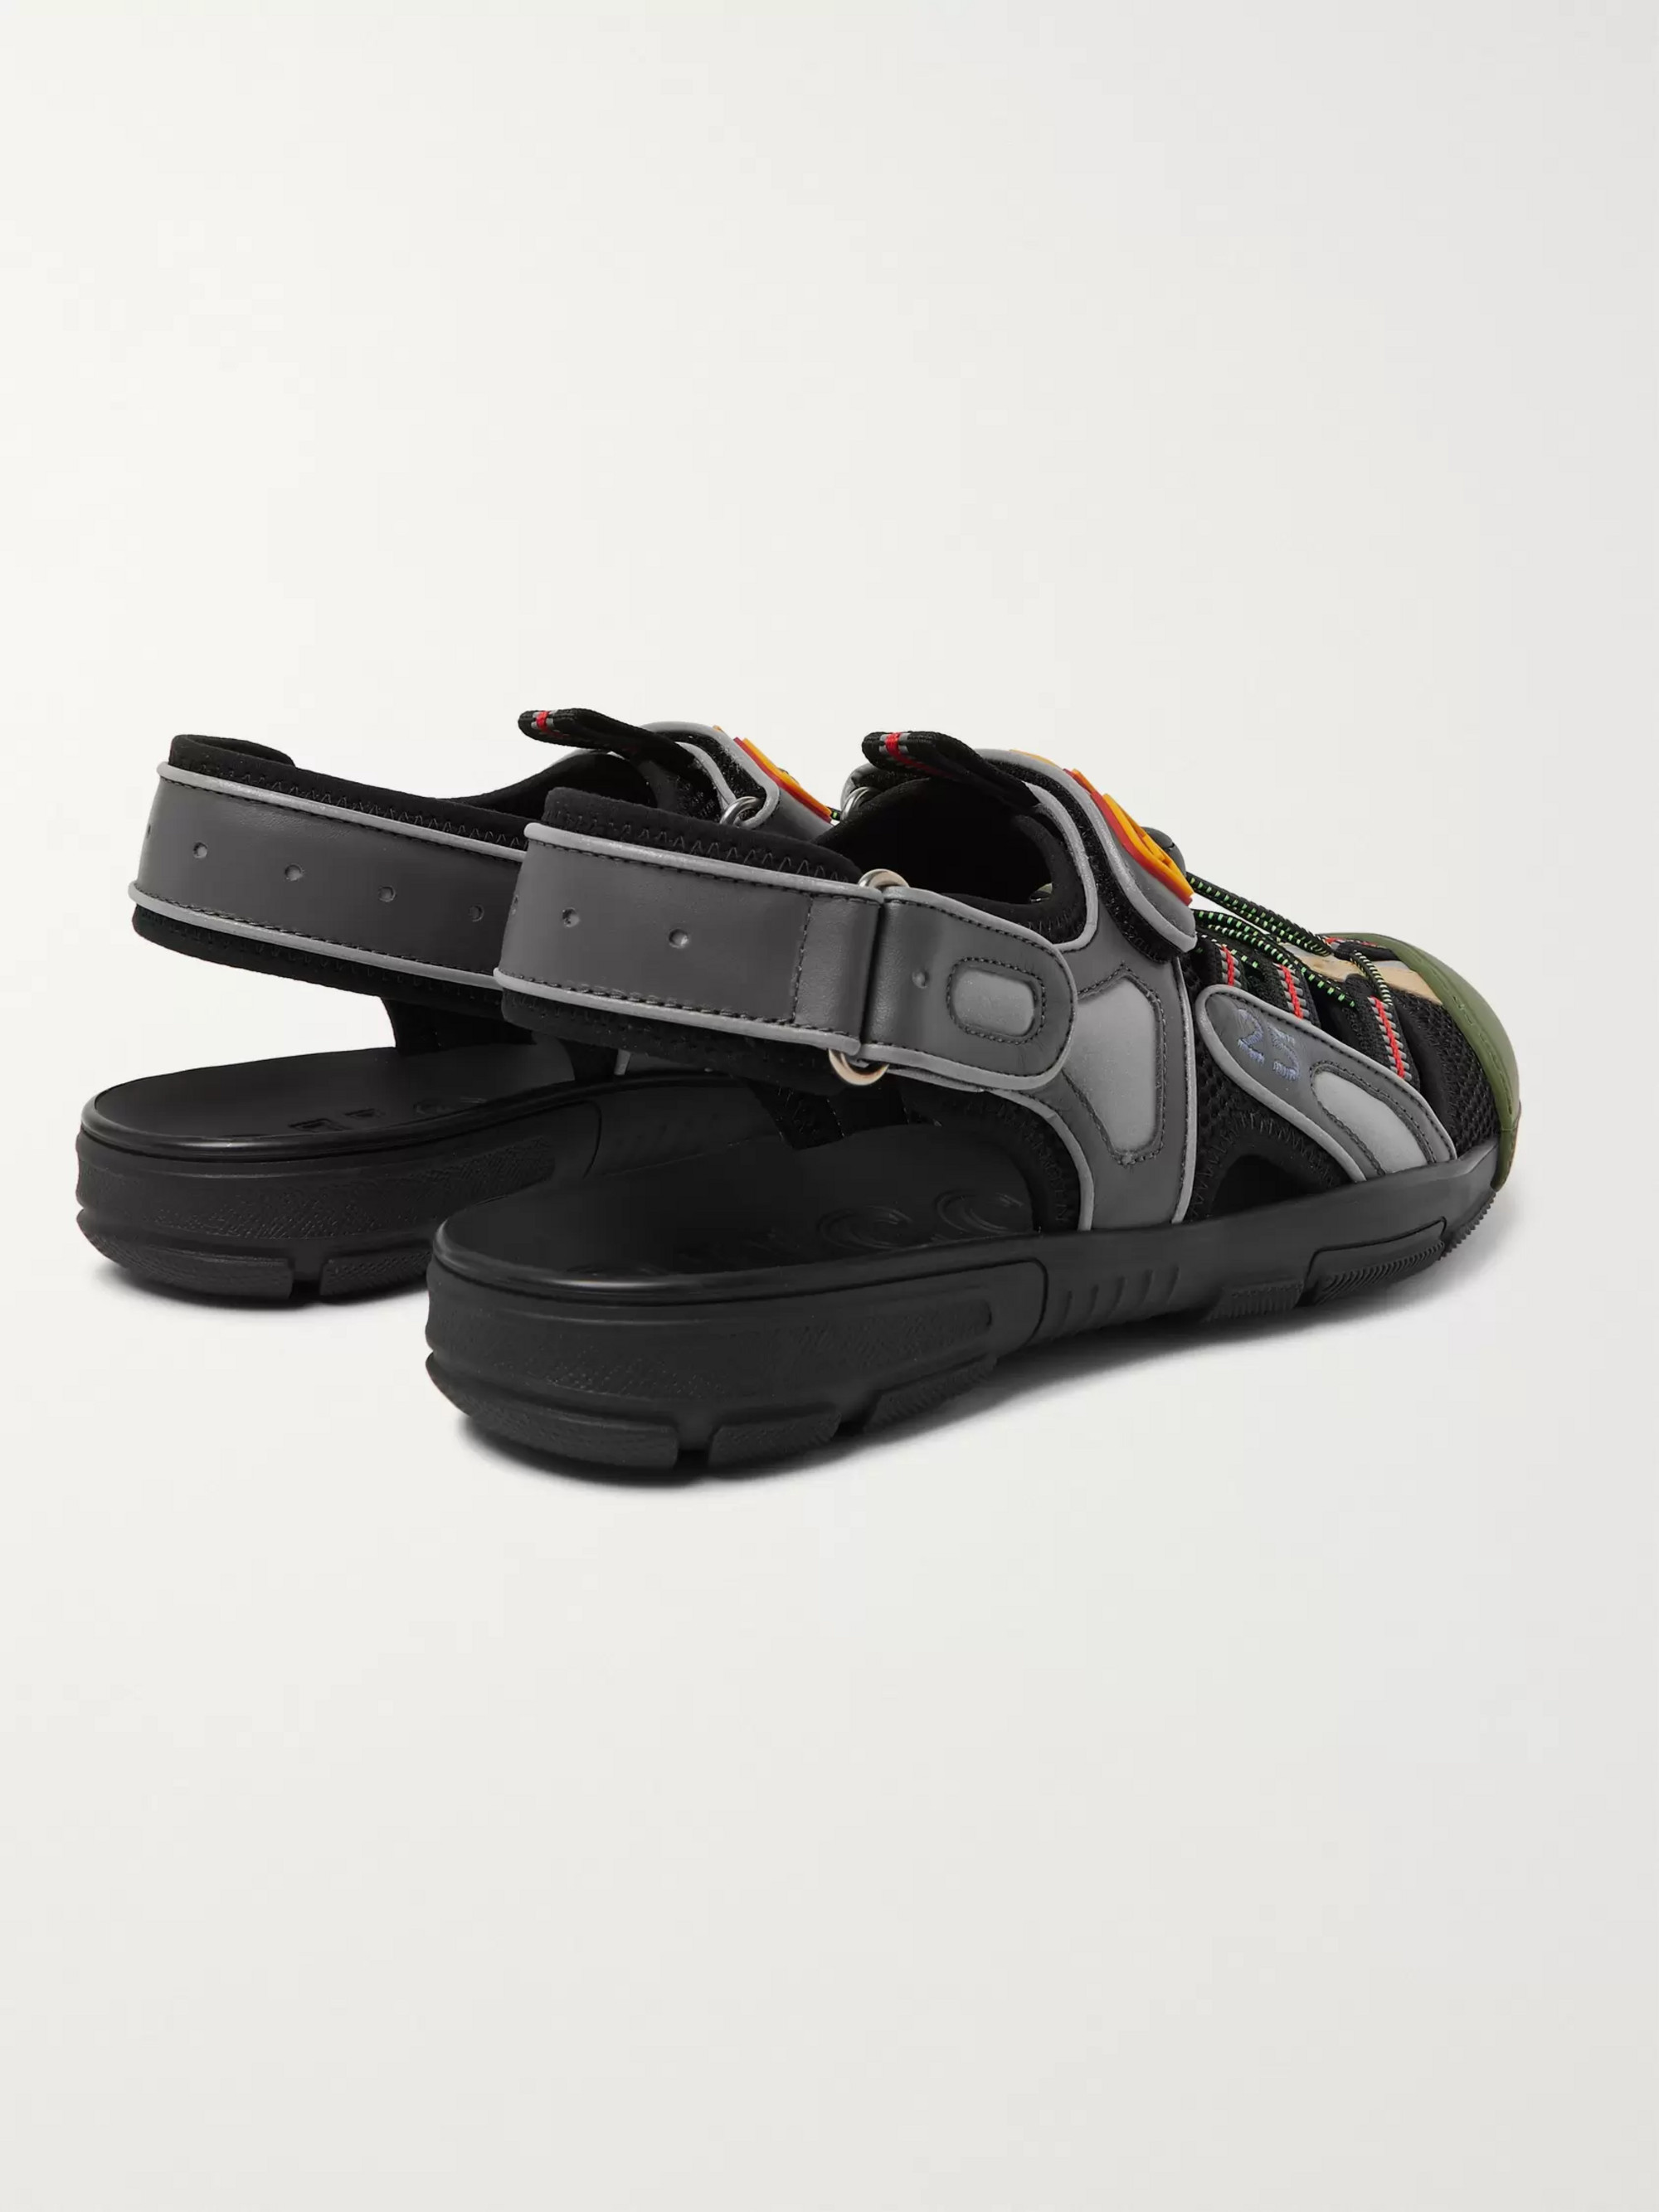 Gucci Logo-Detailed Rubber, Leather and Mesh Sandals